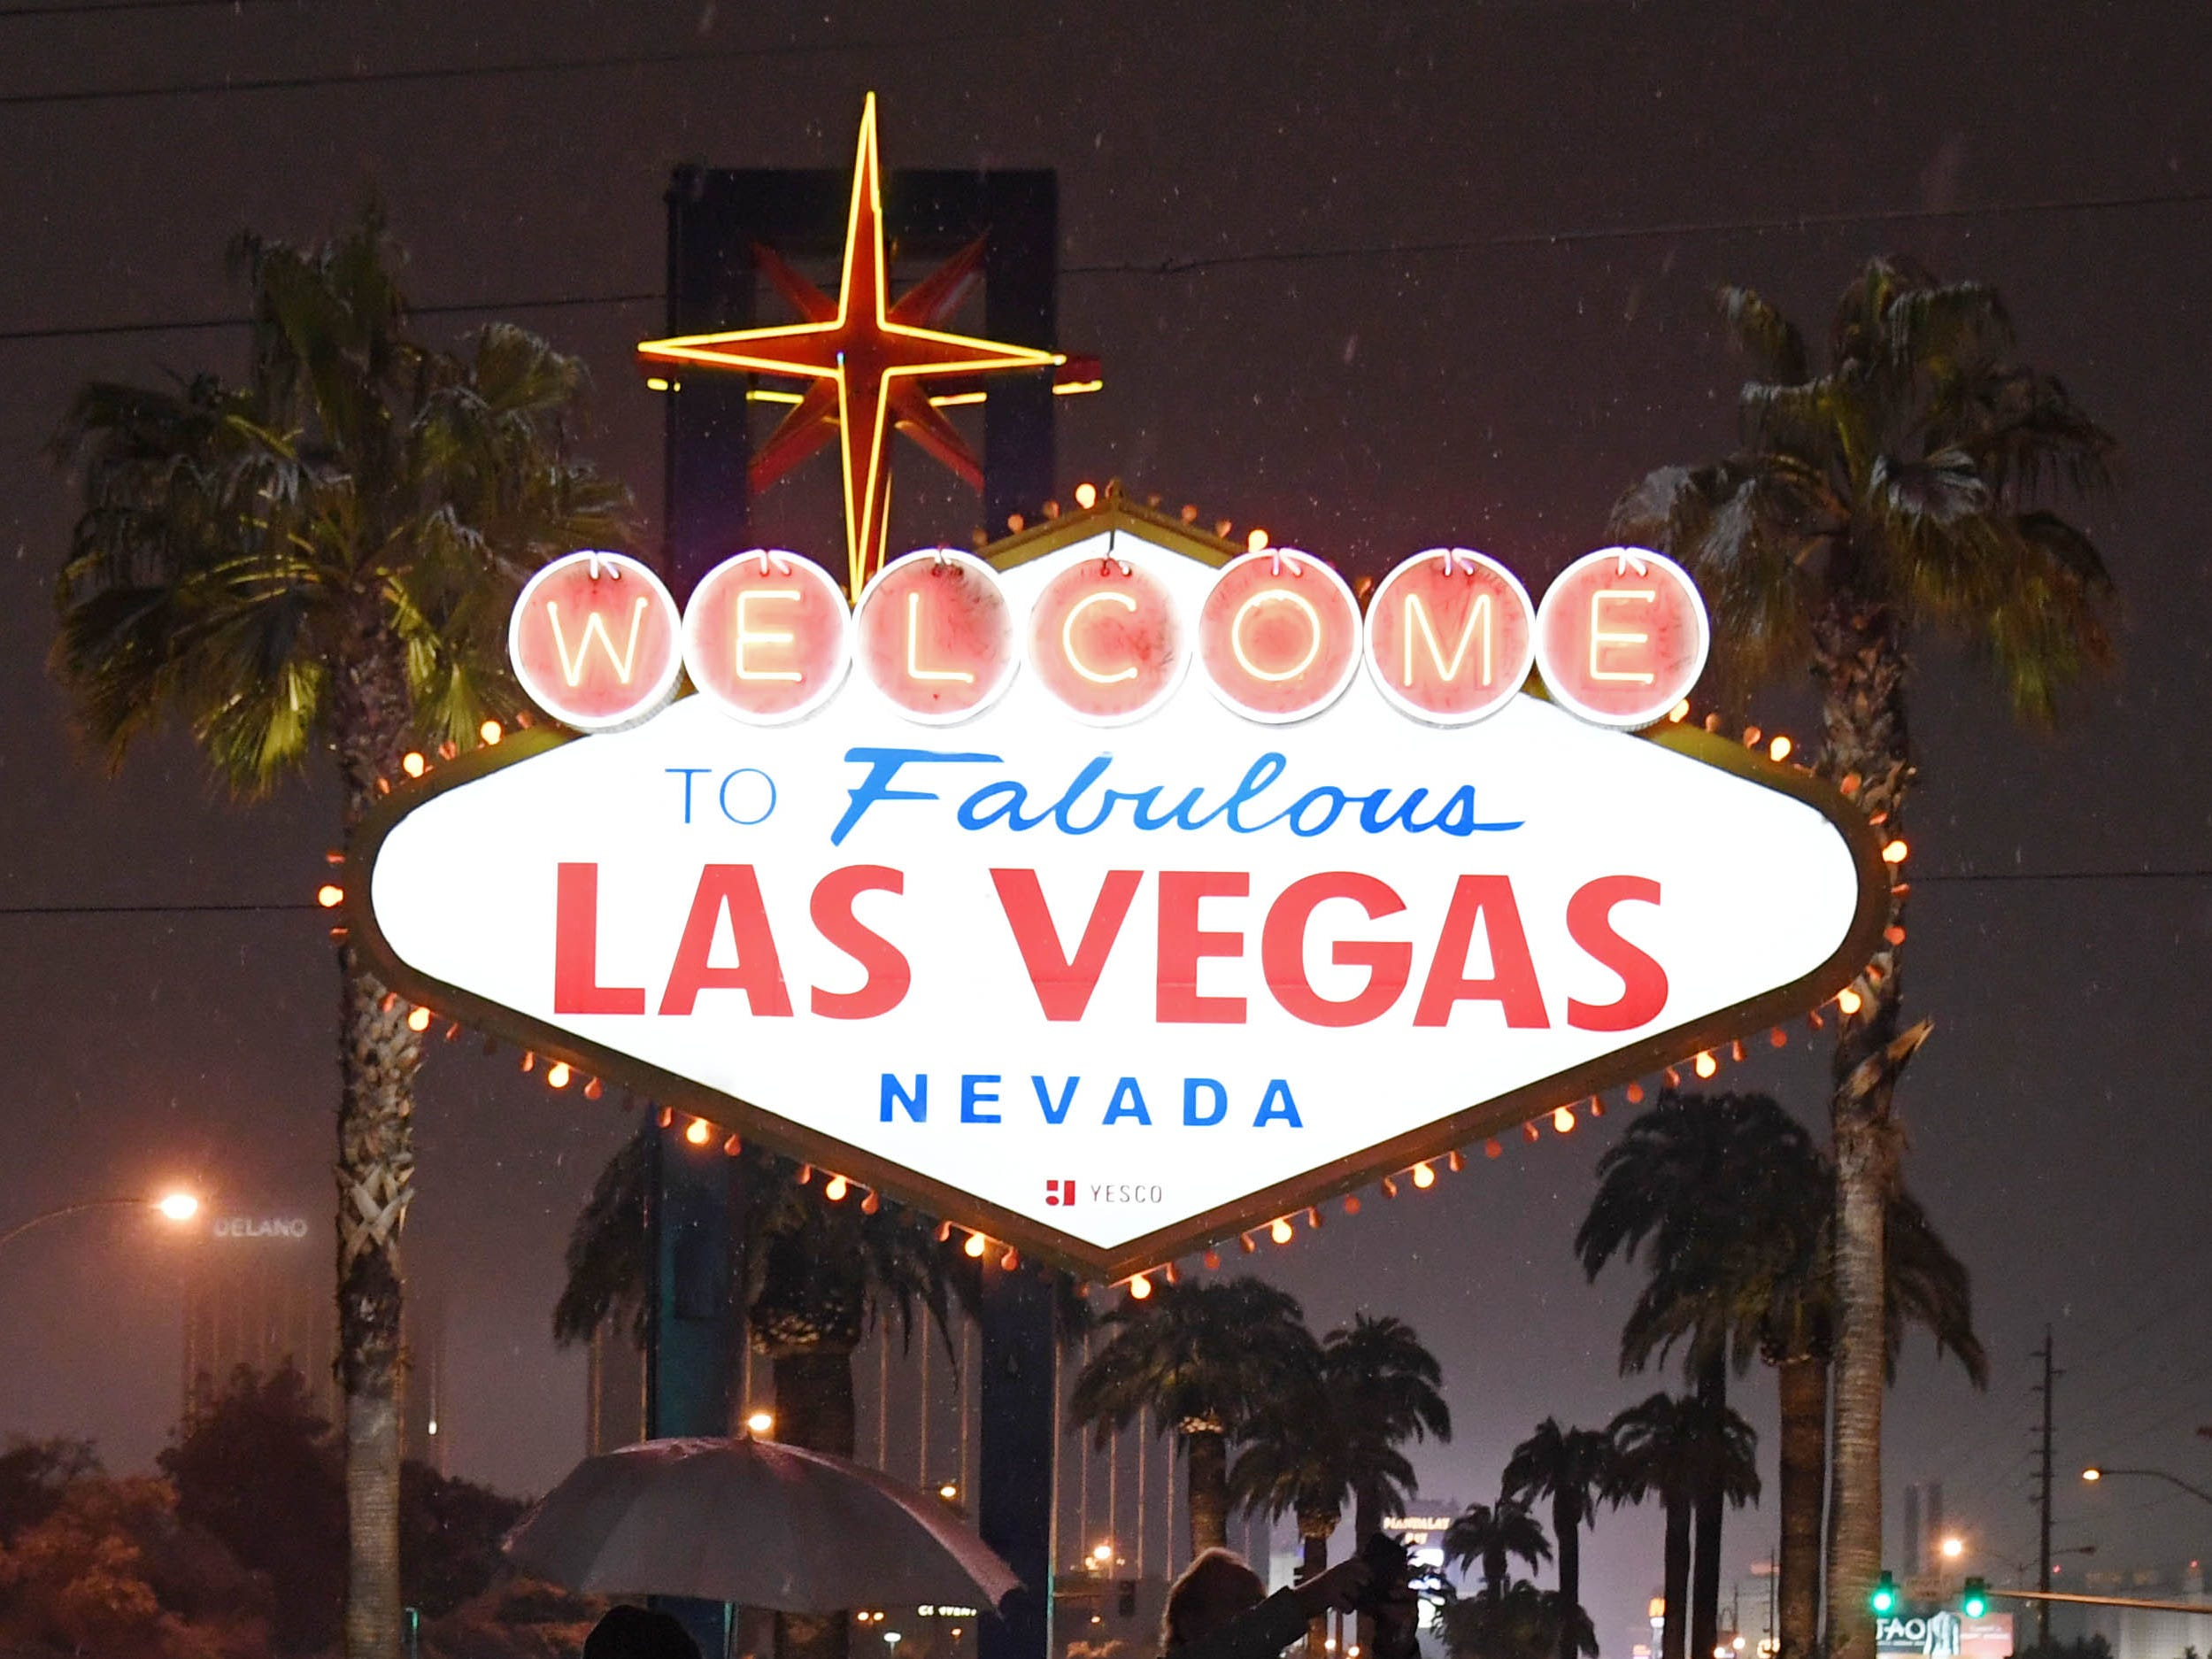 """Visitors take photos at the """"Welcome to Fabulous Las Vegas"""" sign during a winter storm on Feb. 20, 2019."""